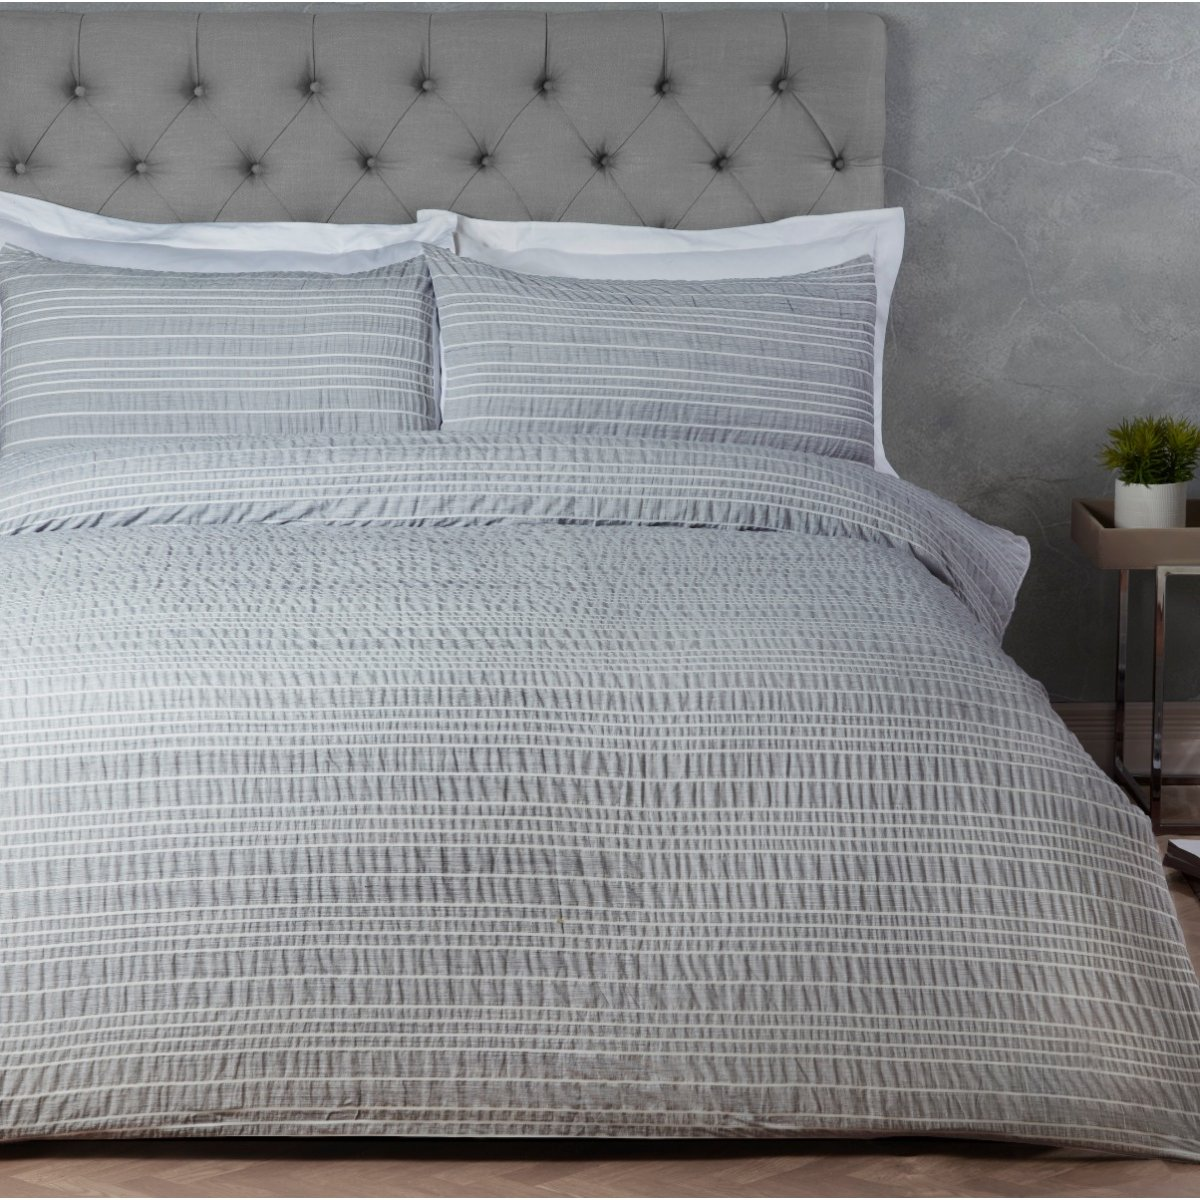 Marl Seersucker Stripe Bedding - Luxury Duvet Cover and Pillowcase Set